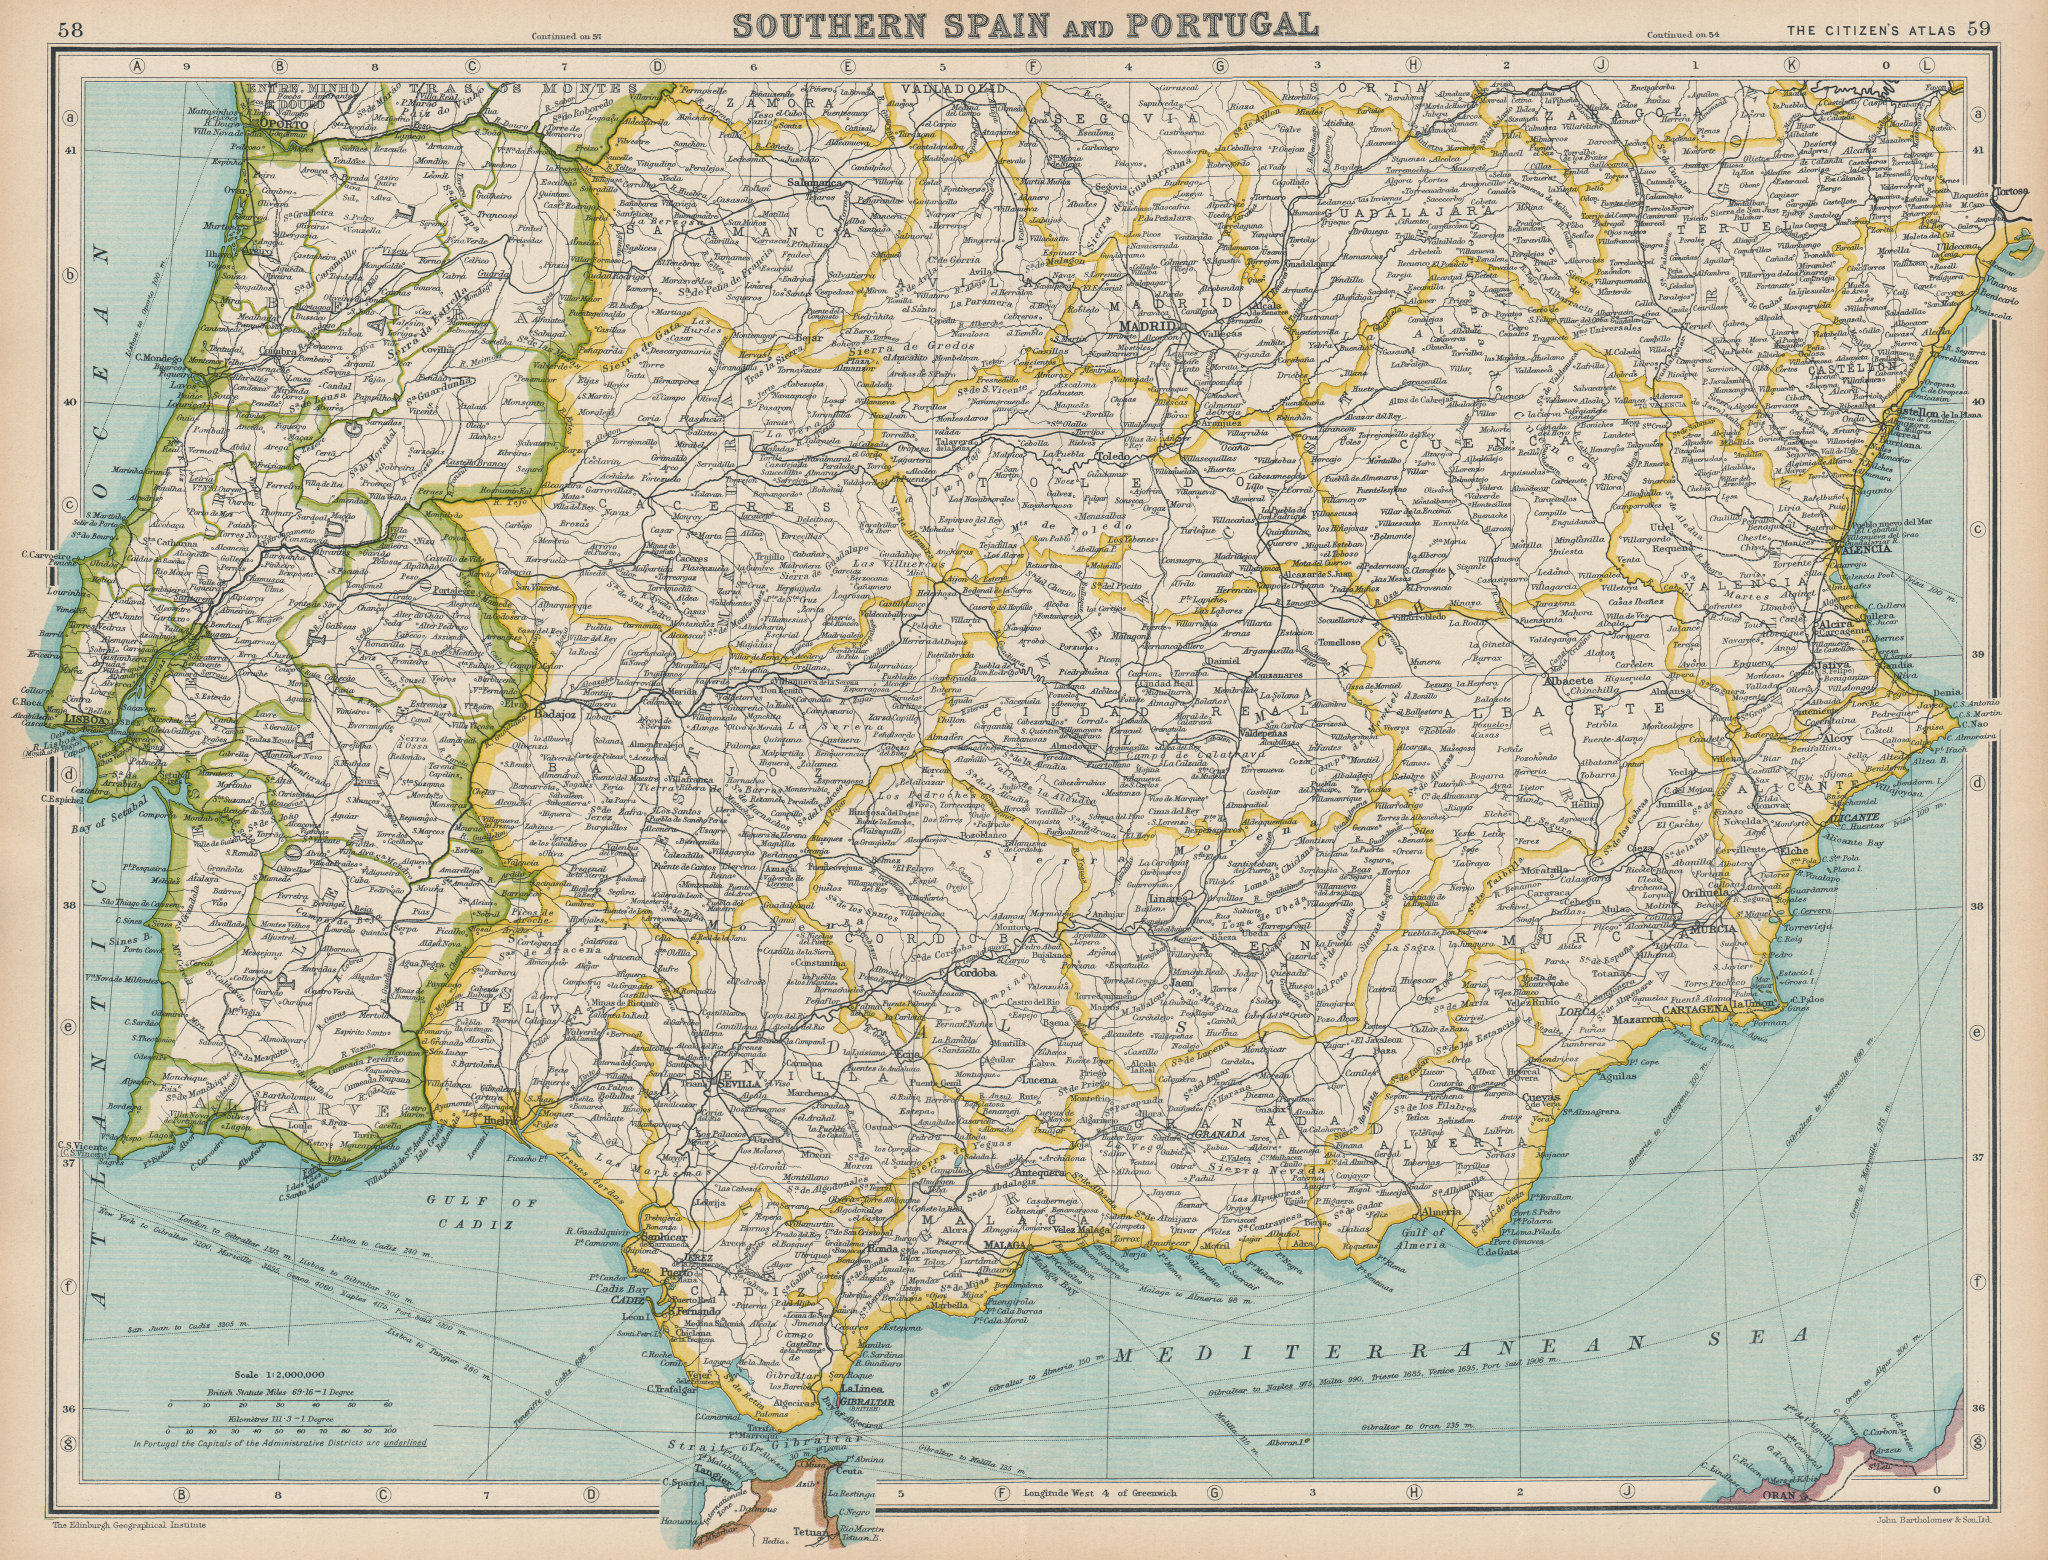 Associate Product IBERIA. Southern Spain and Portugal. BARTHOLOMEW 1924 old vintage map chart